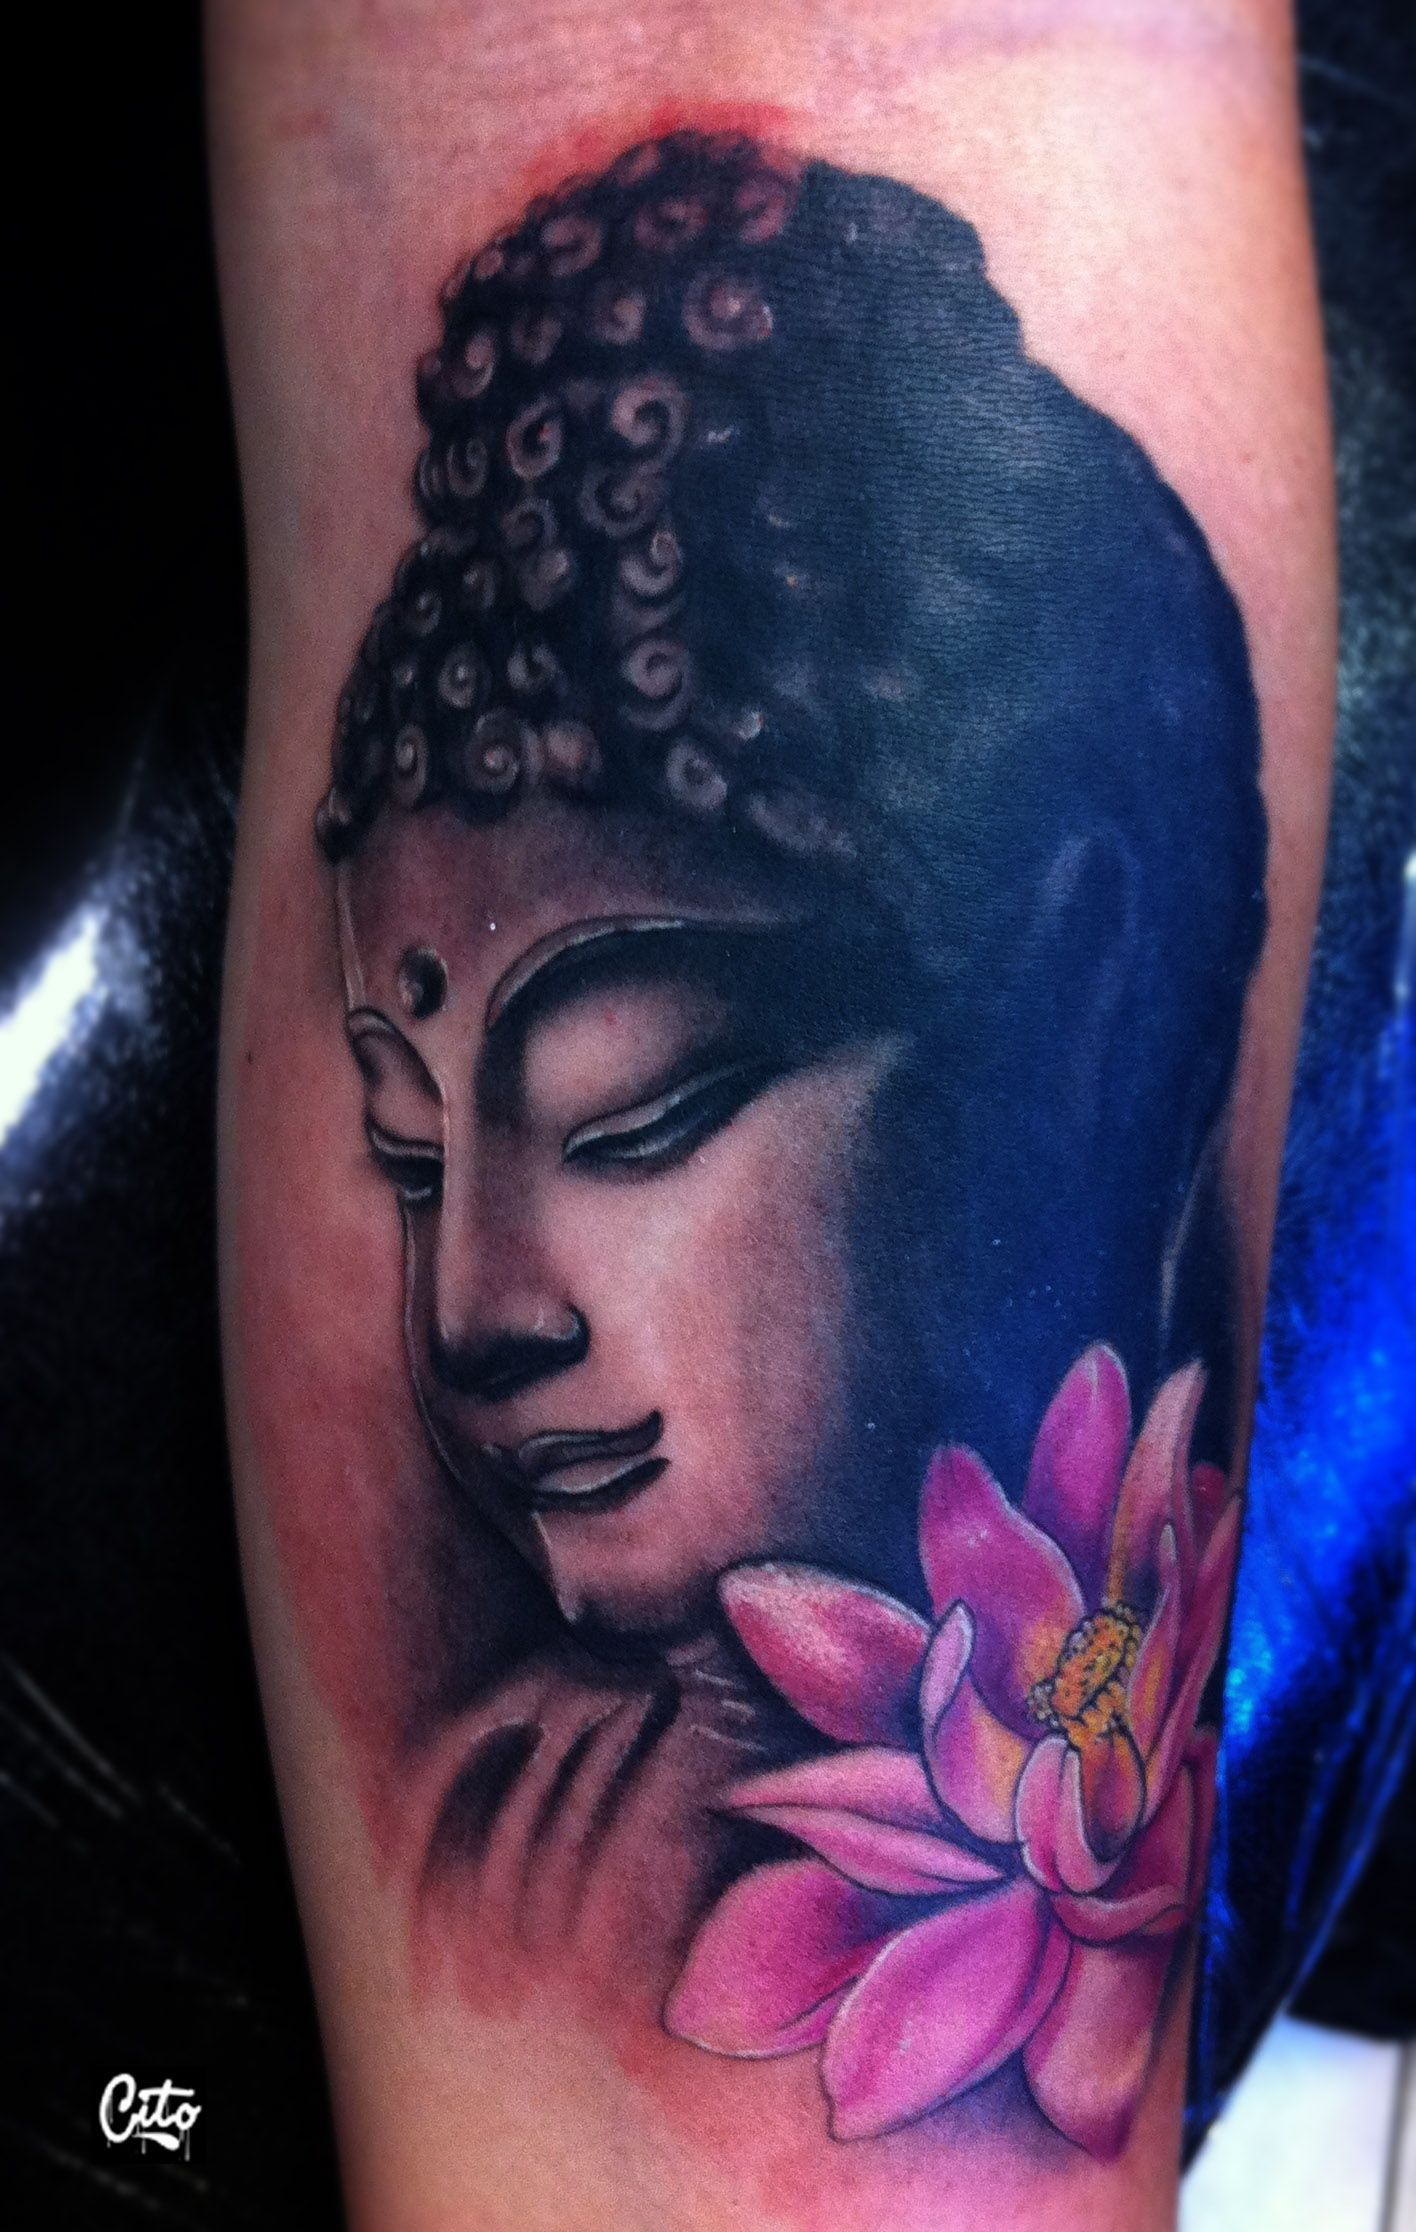 Buddah tattoo in buddhism the lotus flower symbolizes faithfulness buddah tattoo in buddhism the lotus flower symbolizes faithfulness lotuses are symbols of purity enlightenment and spontaneous generation and hence izmirmasajfo